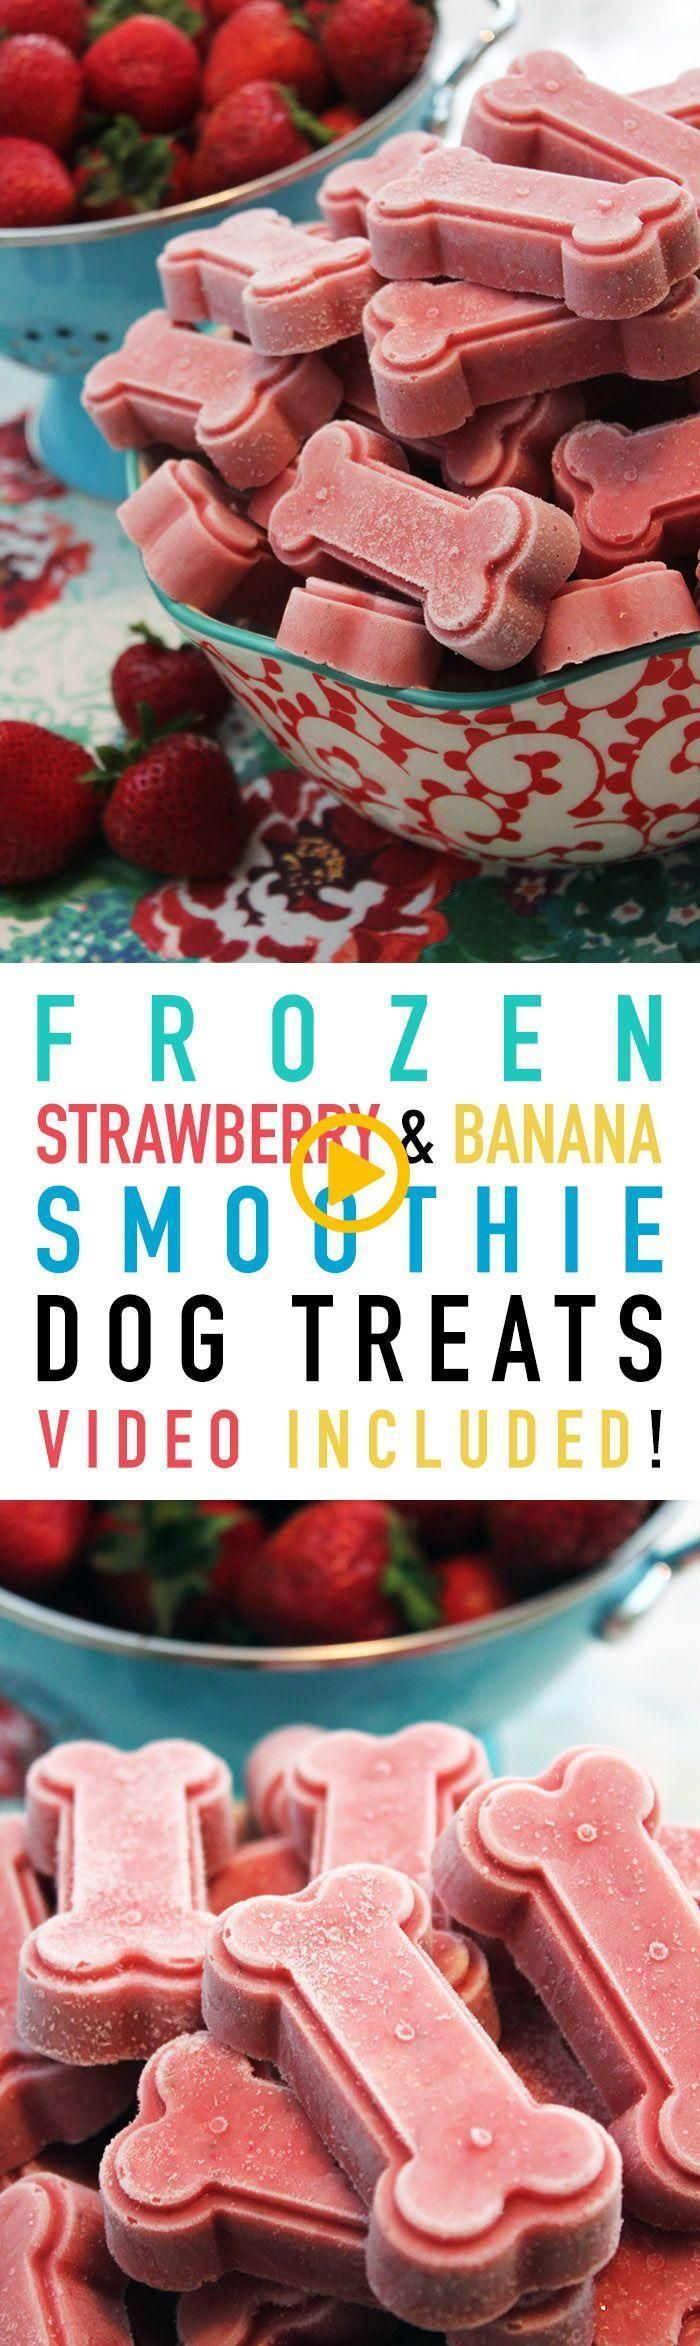 Strawberry Banana Smoothie Frozen Dog Treats | The Cottage Market #strawberrybananasmoothie Strawberry Banana Smoothie Frozen Dog Treats | The Cottage Market #healthystrawberrybananasmoothie Strawberry Banana Smoothie Frozen Dog Treats | The Cottage Market #strawberrybananasmoothie Strawberry Banana Smoothie Frozen Dog Treats | The Cottage Market #healthystrawberrybananasmoothie